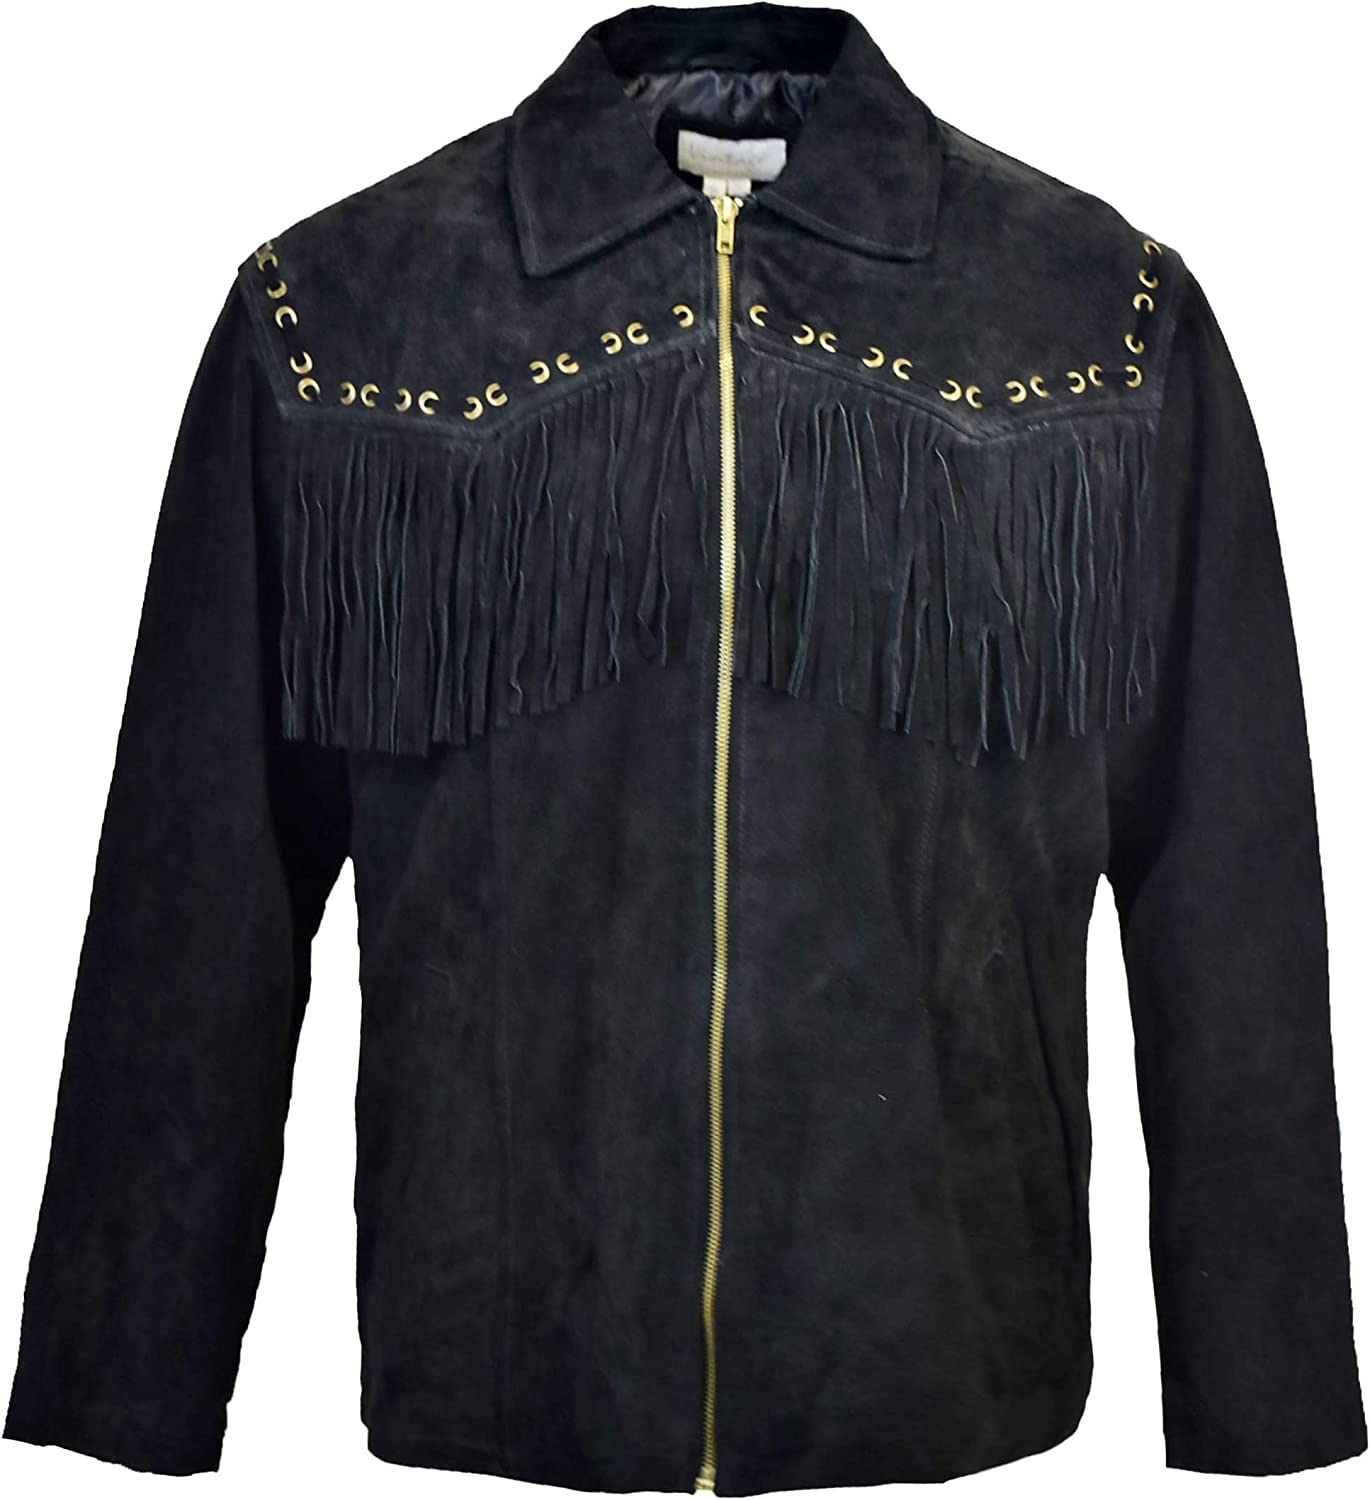 Victory Outfitters Men's Genuine Suede Fringe Zip Up Jacket